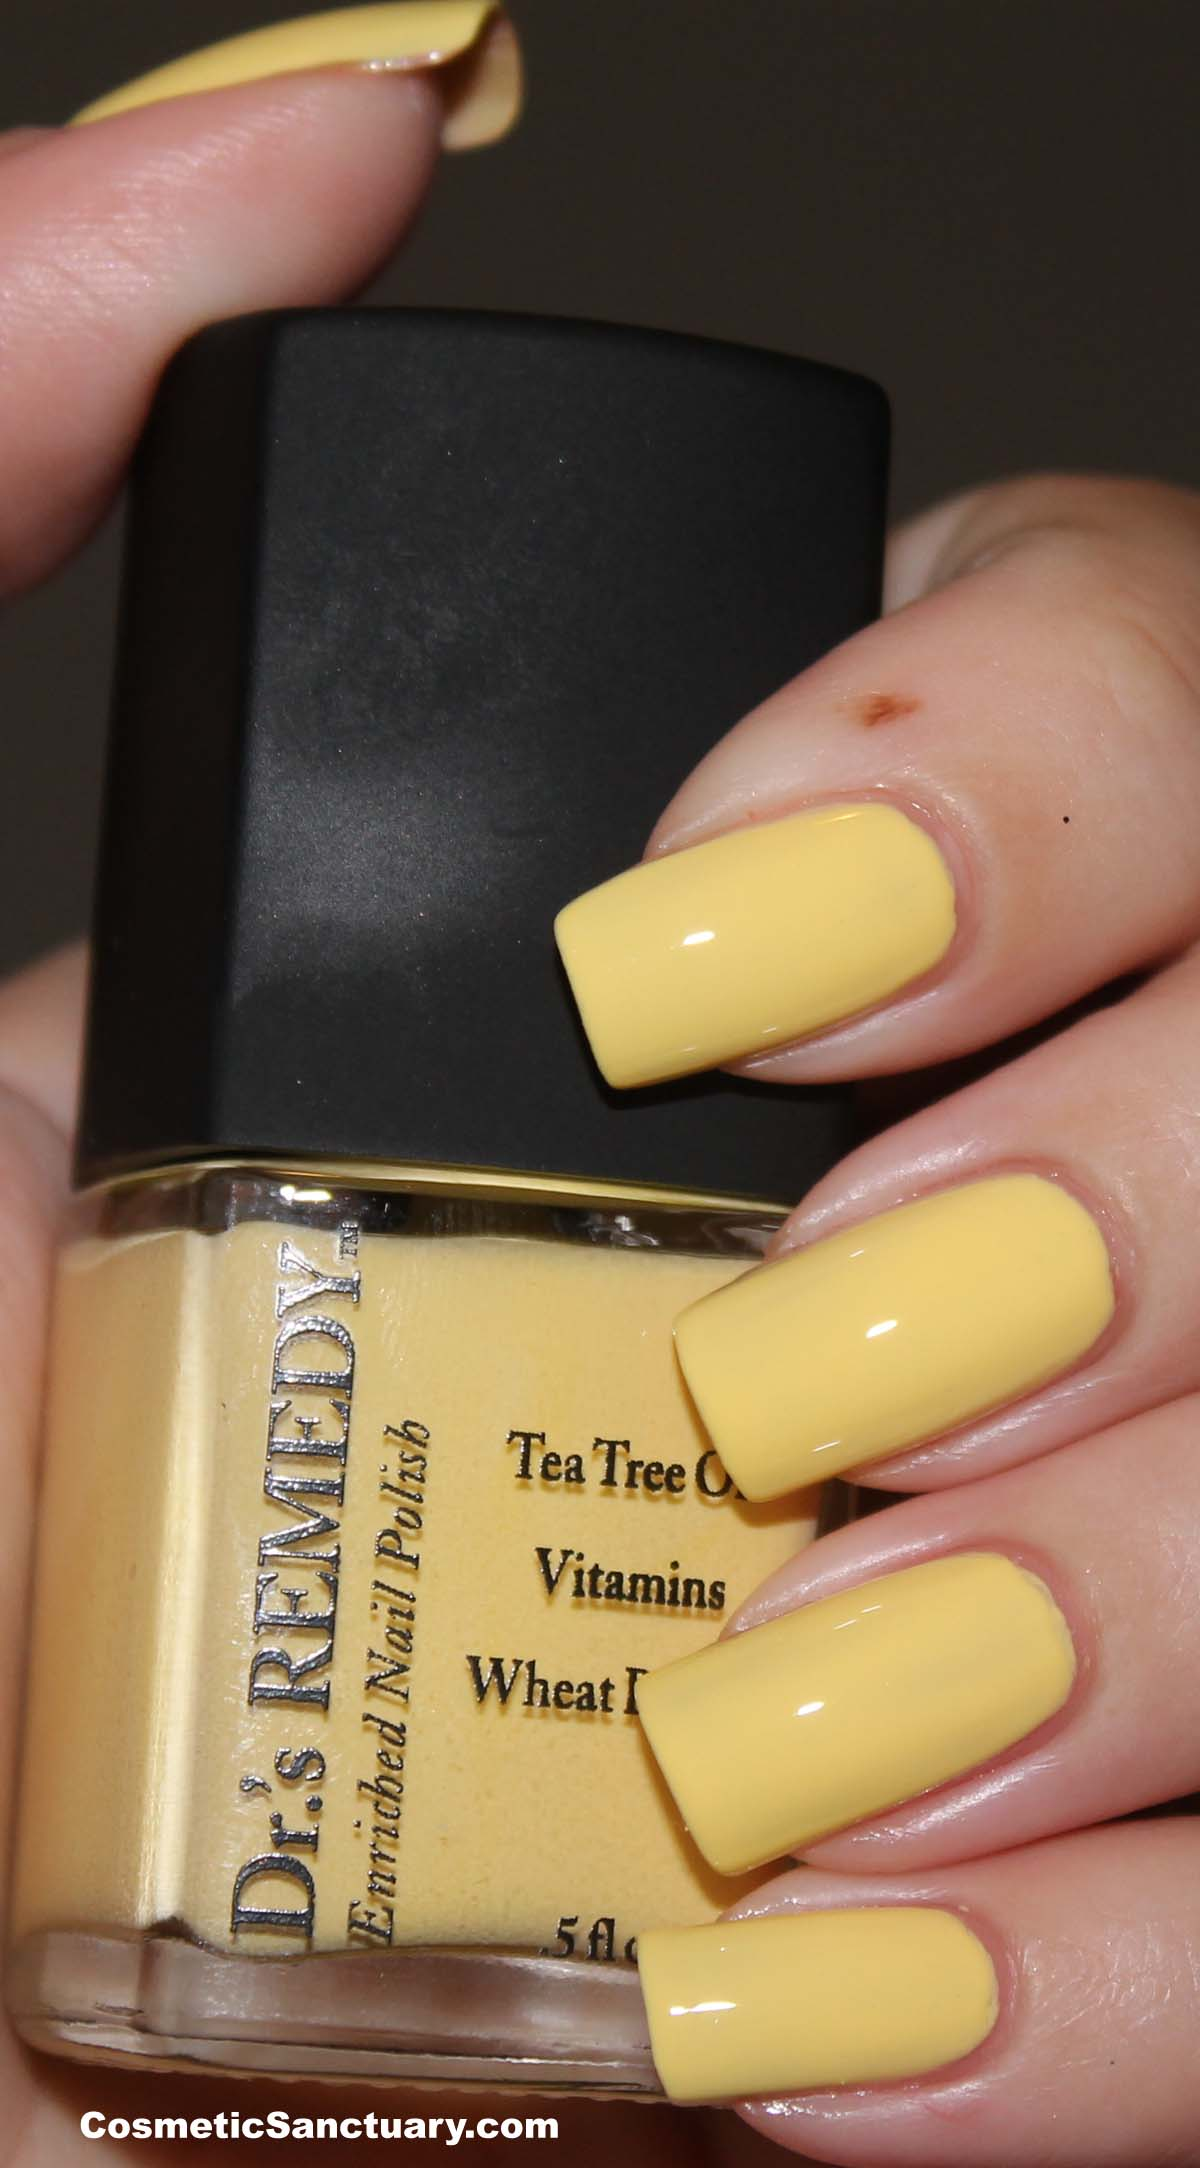 Antifungal Nail Polish >> Dr.'s Remedy Enriched Nail Polish Swatches and Review